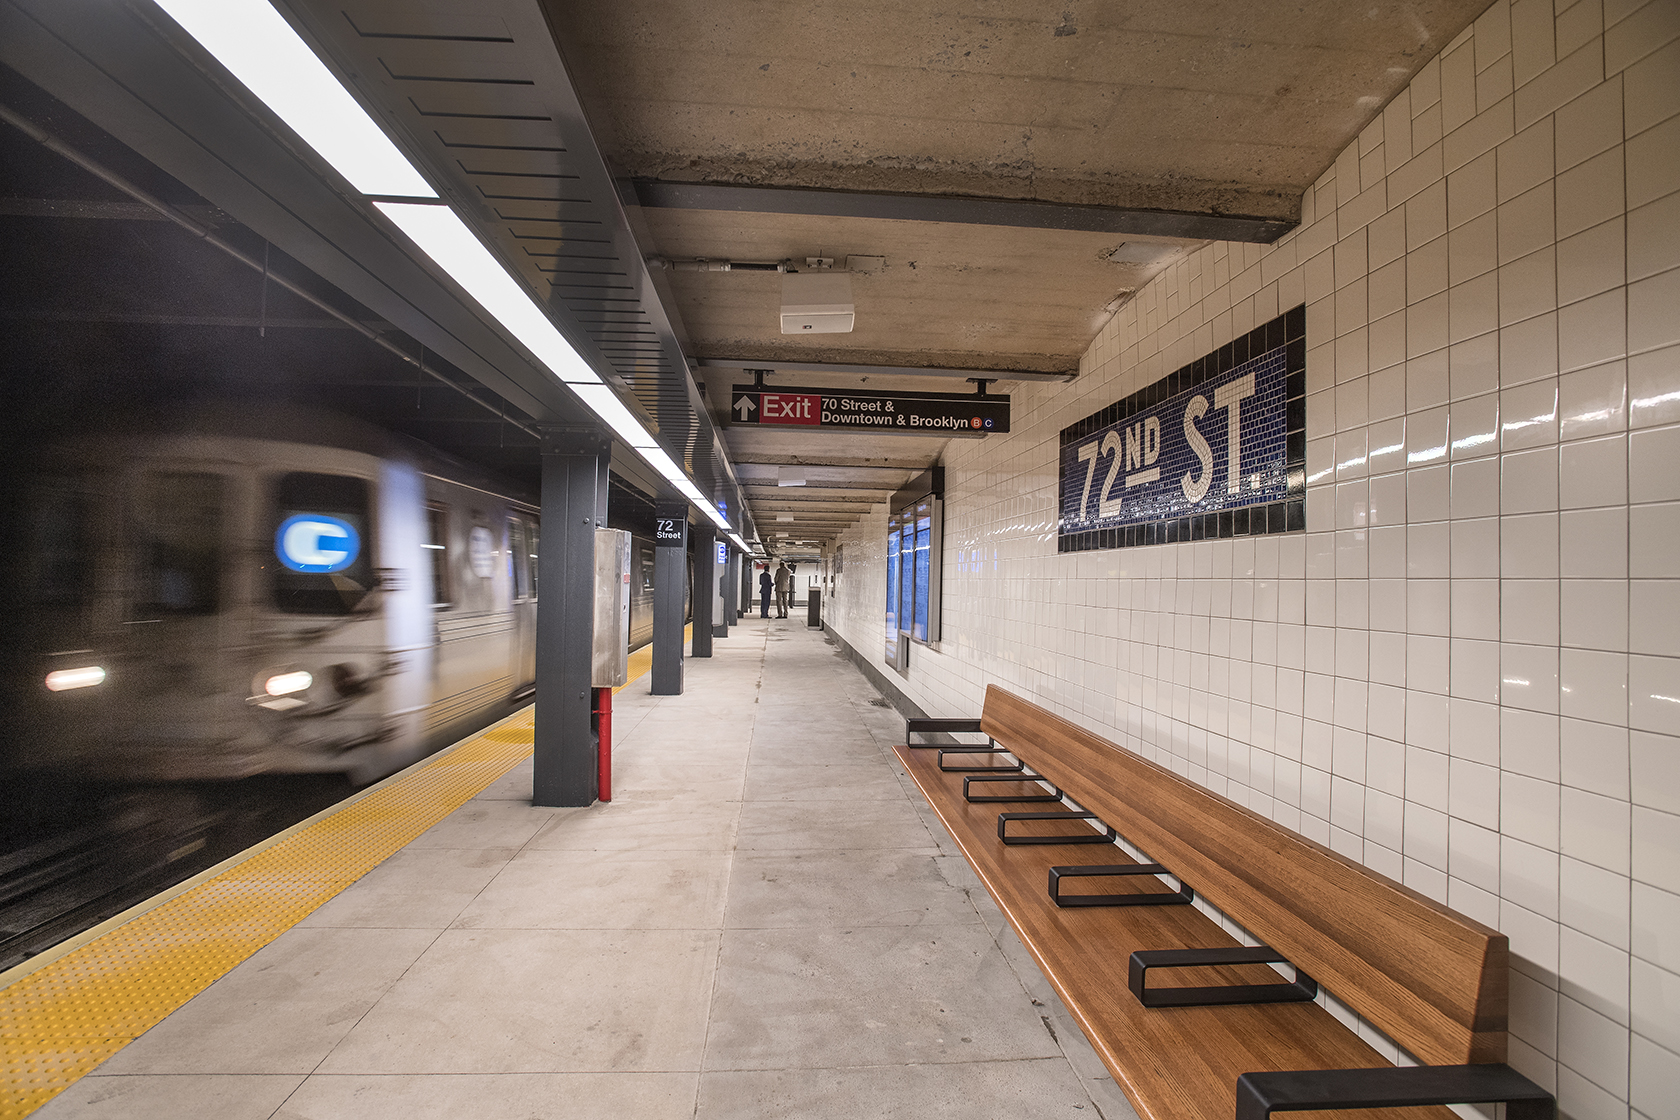 72nd Street Subway Map.72nd Street Station Ind Eighth Avenue Line Wikipedia